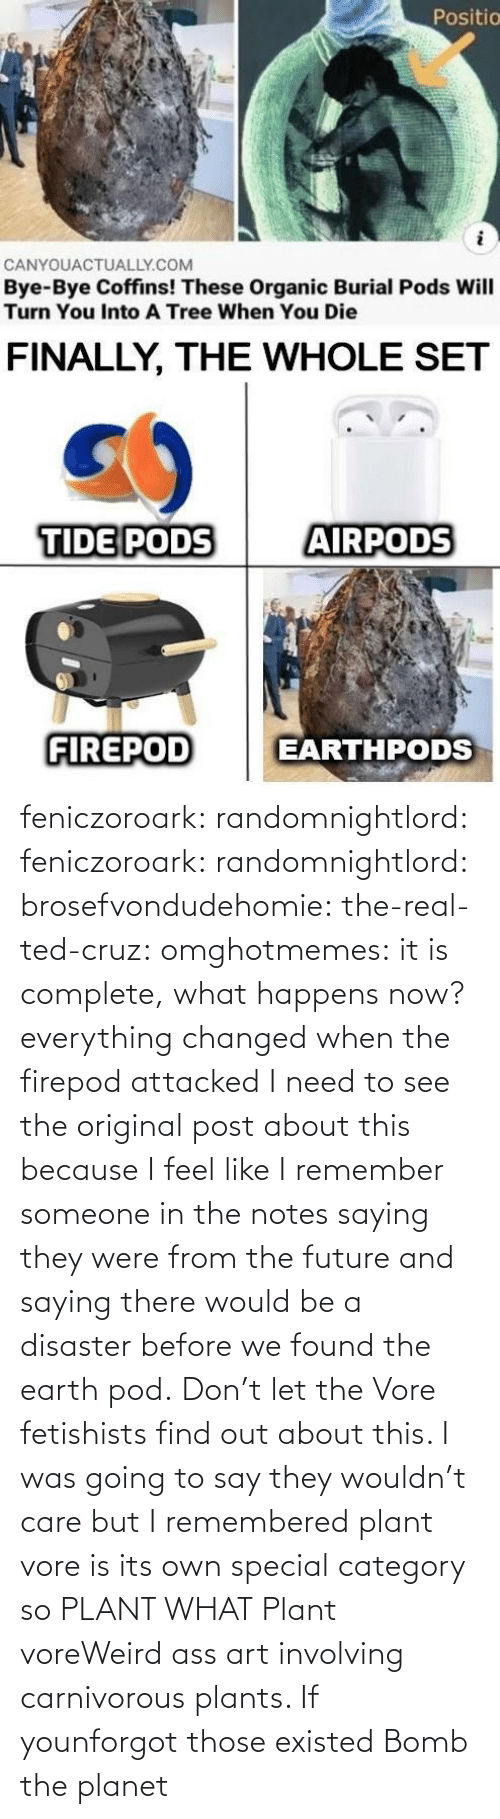 Ted: feniczoroark:  randomnightlord:  feniczoroark:  randomnightlord:  brosefvondudehomie: the-real-ted-cruz:  omghotmemes: it is complete, what happens now? everything changed when the firepod attacked    I need to see the original post about this because I feel like I remember someone in the notes saying they were from the future and saying there would be a disaster before we found the earth pod.    Don't let the Vore fetishists find out about this.    I was going to say they wouldn't care but I remembered plant vore is its own special category so   PLANT WHAT   Plant voreWeird ass art involving carnivorous plants. If younforgot those existed   Bomb the planet